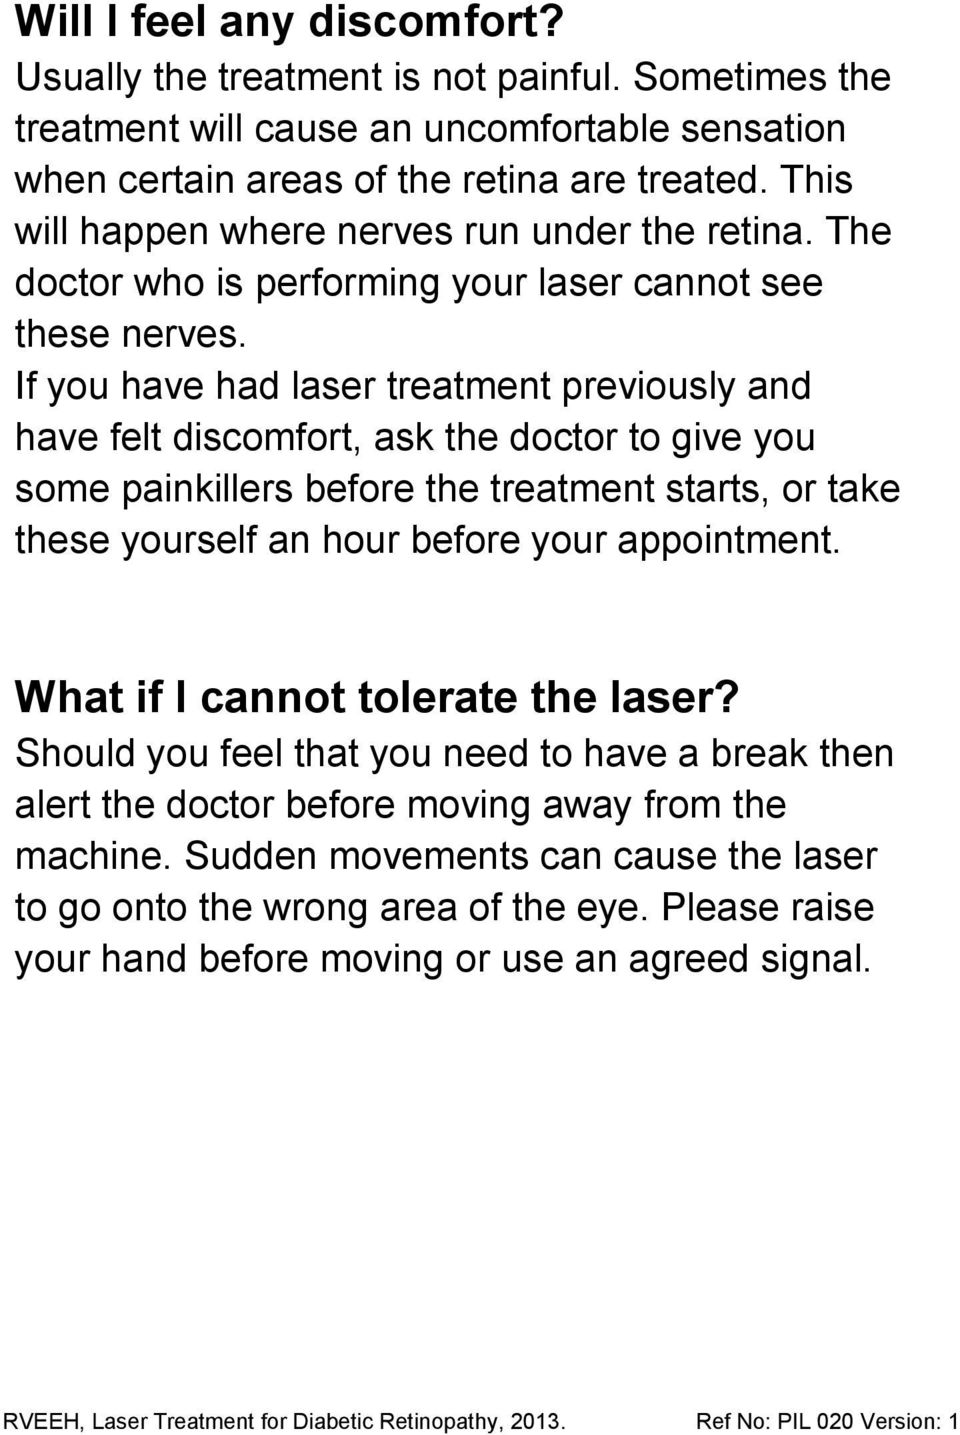 If you have had laser treatment previously and have felt discomfort, ask the doctor to give you some painkillers before the treatment starts, or take these yourself an hour before your